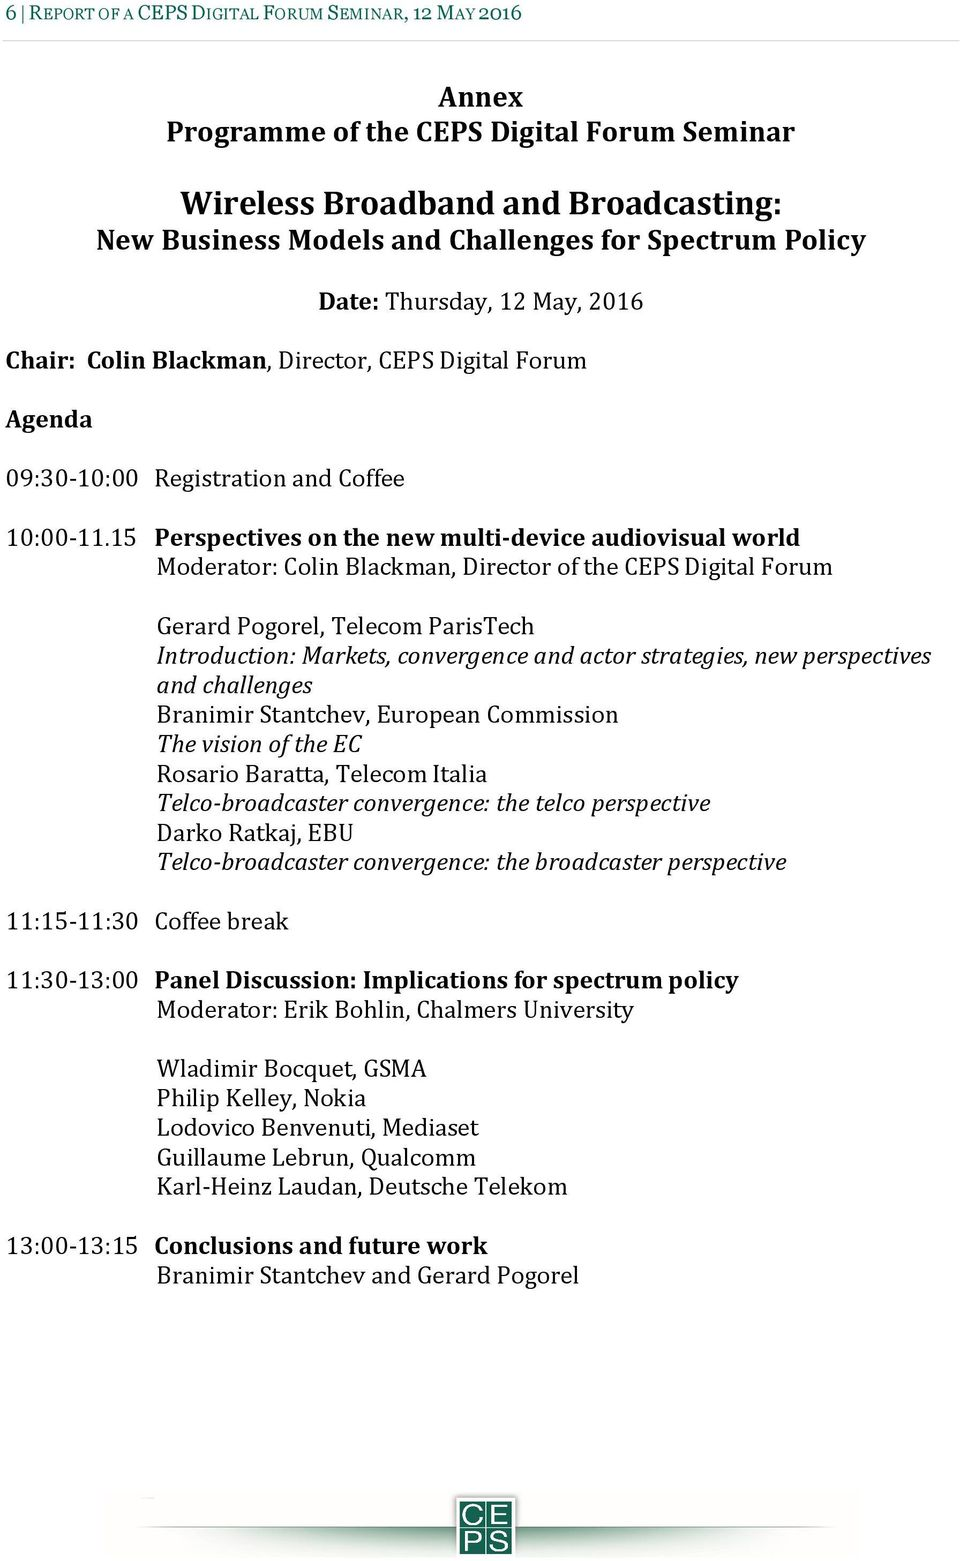 15 Perspectives on the new multi-device audiovisual world Moderator: Colin Blackman, Director of the CEPS Digital Forum 11:15-11:30 Coffee break Gerard Pogorel, Telecom ParisTech Introduction: